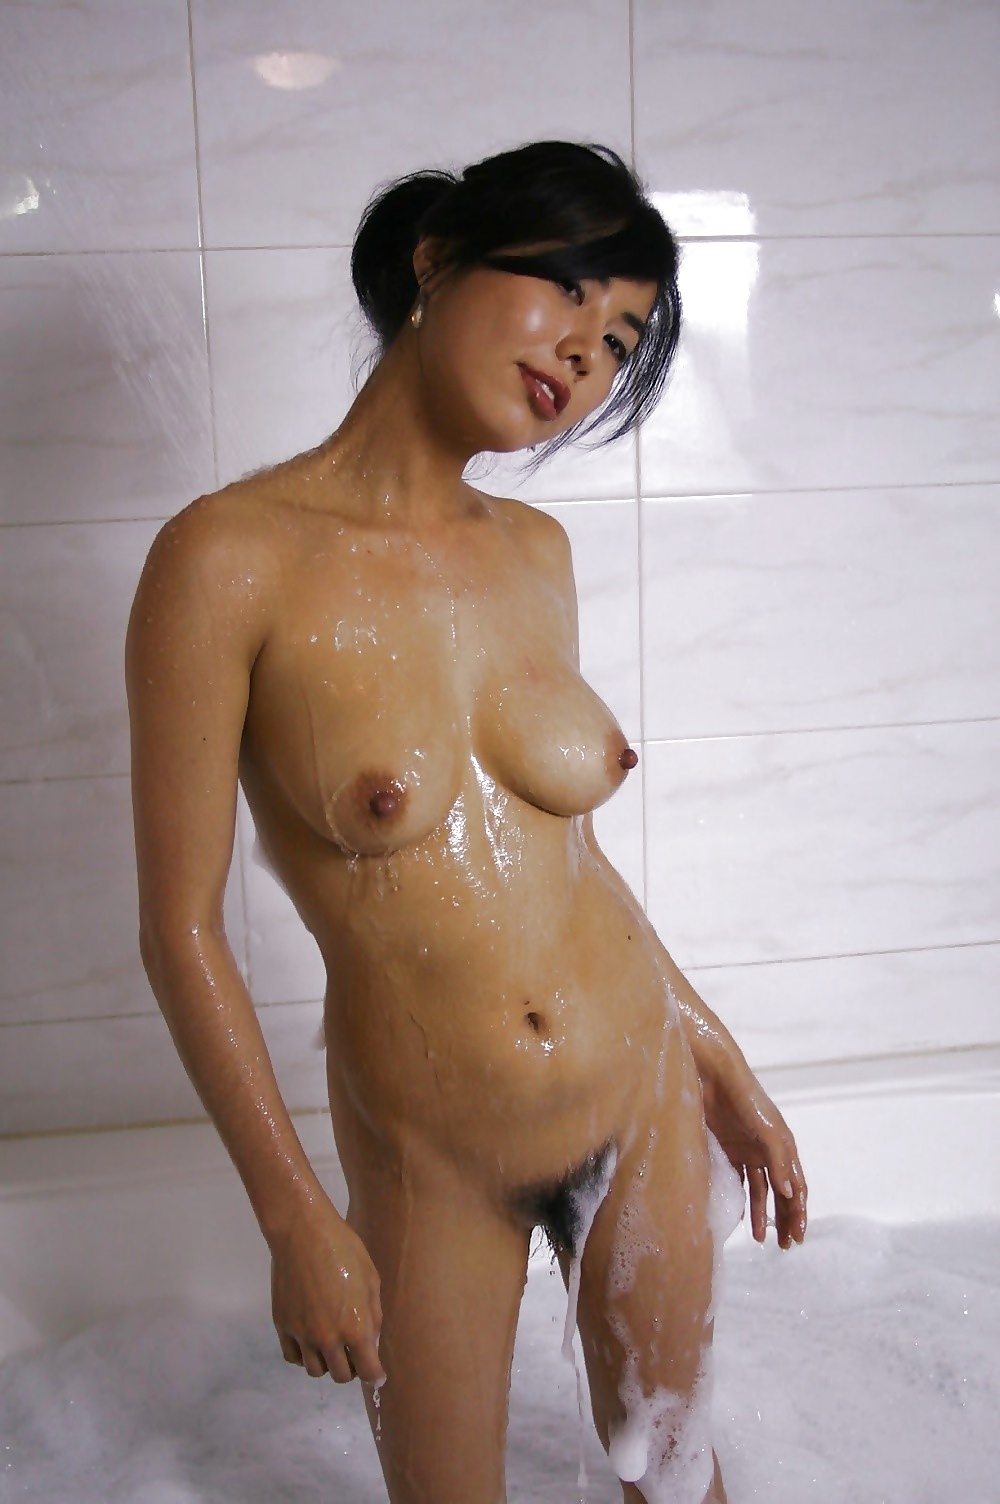 Korean bathroom nude hardecore fucking interracial